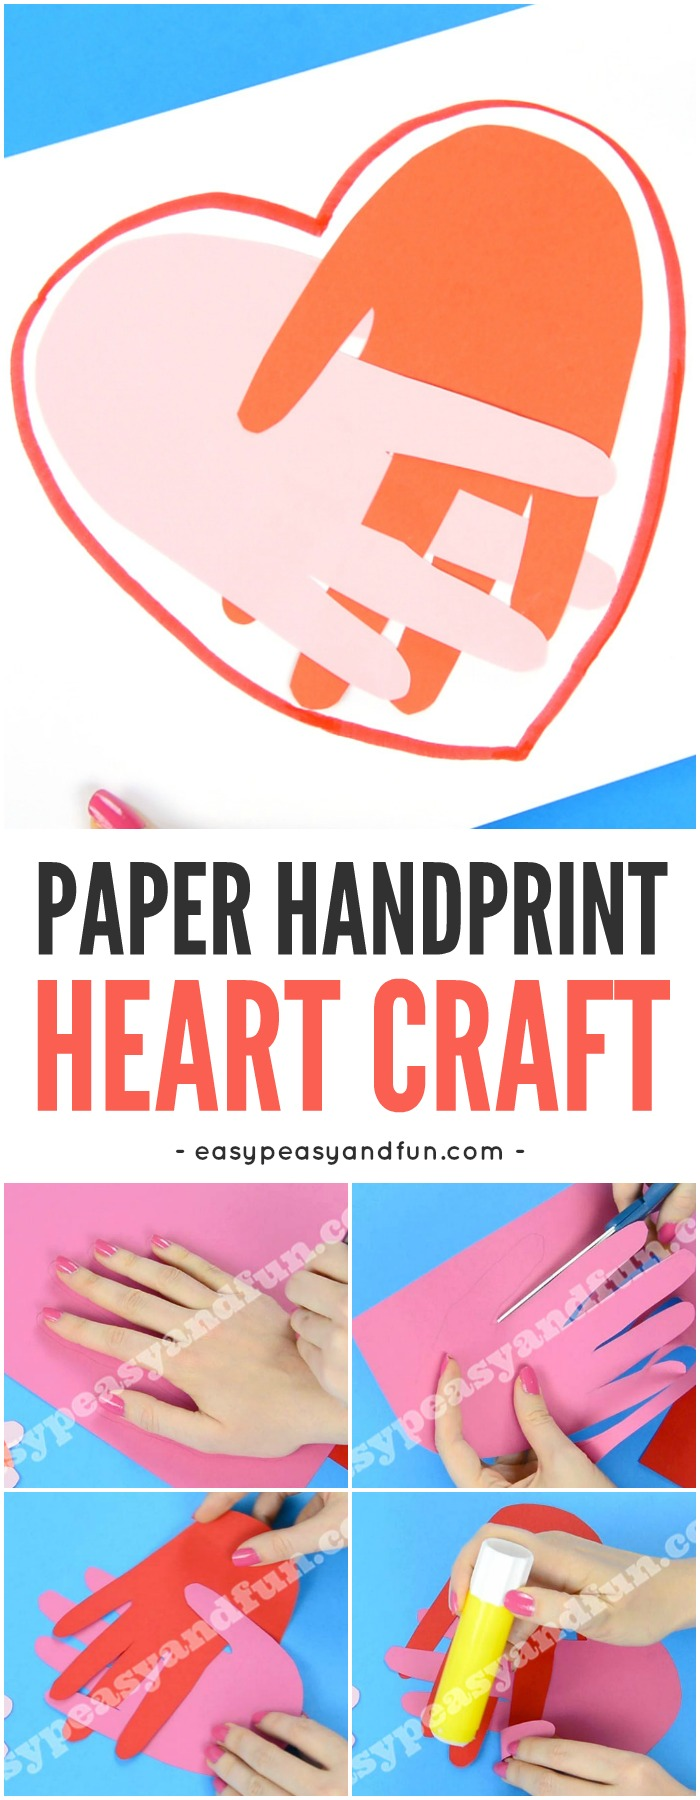 handprint heart craft handprint craft easy peasy and 2152